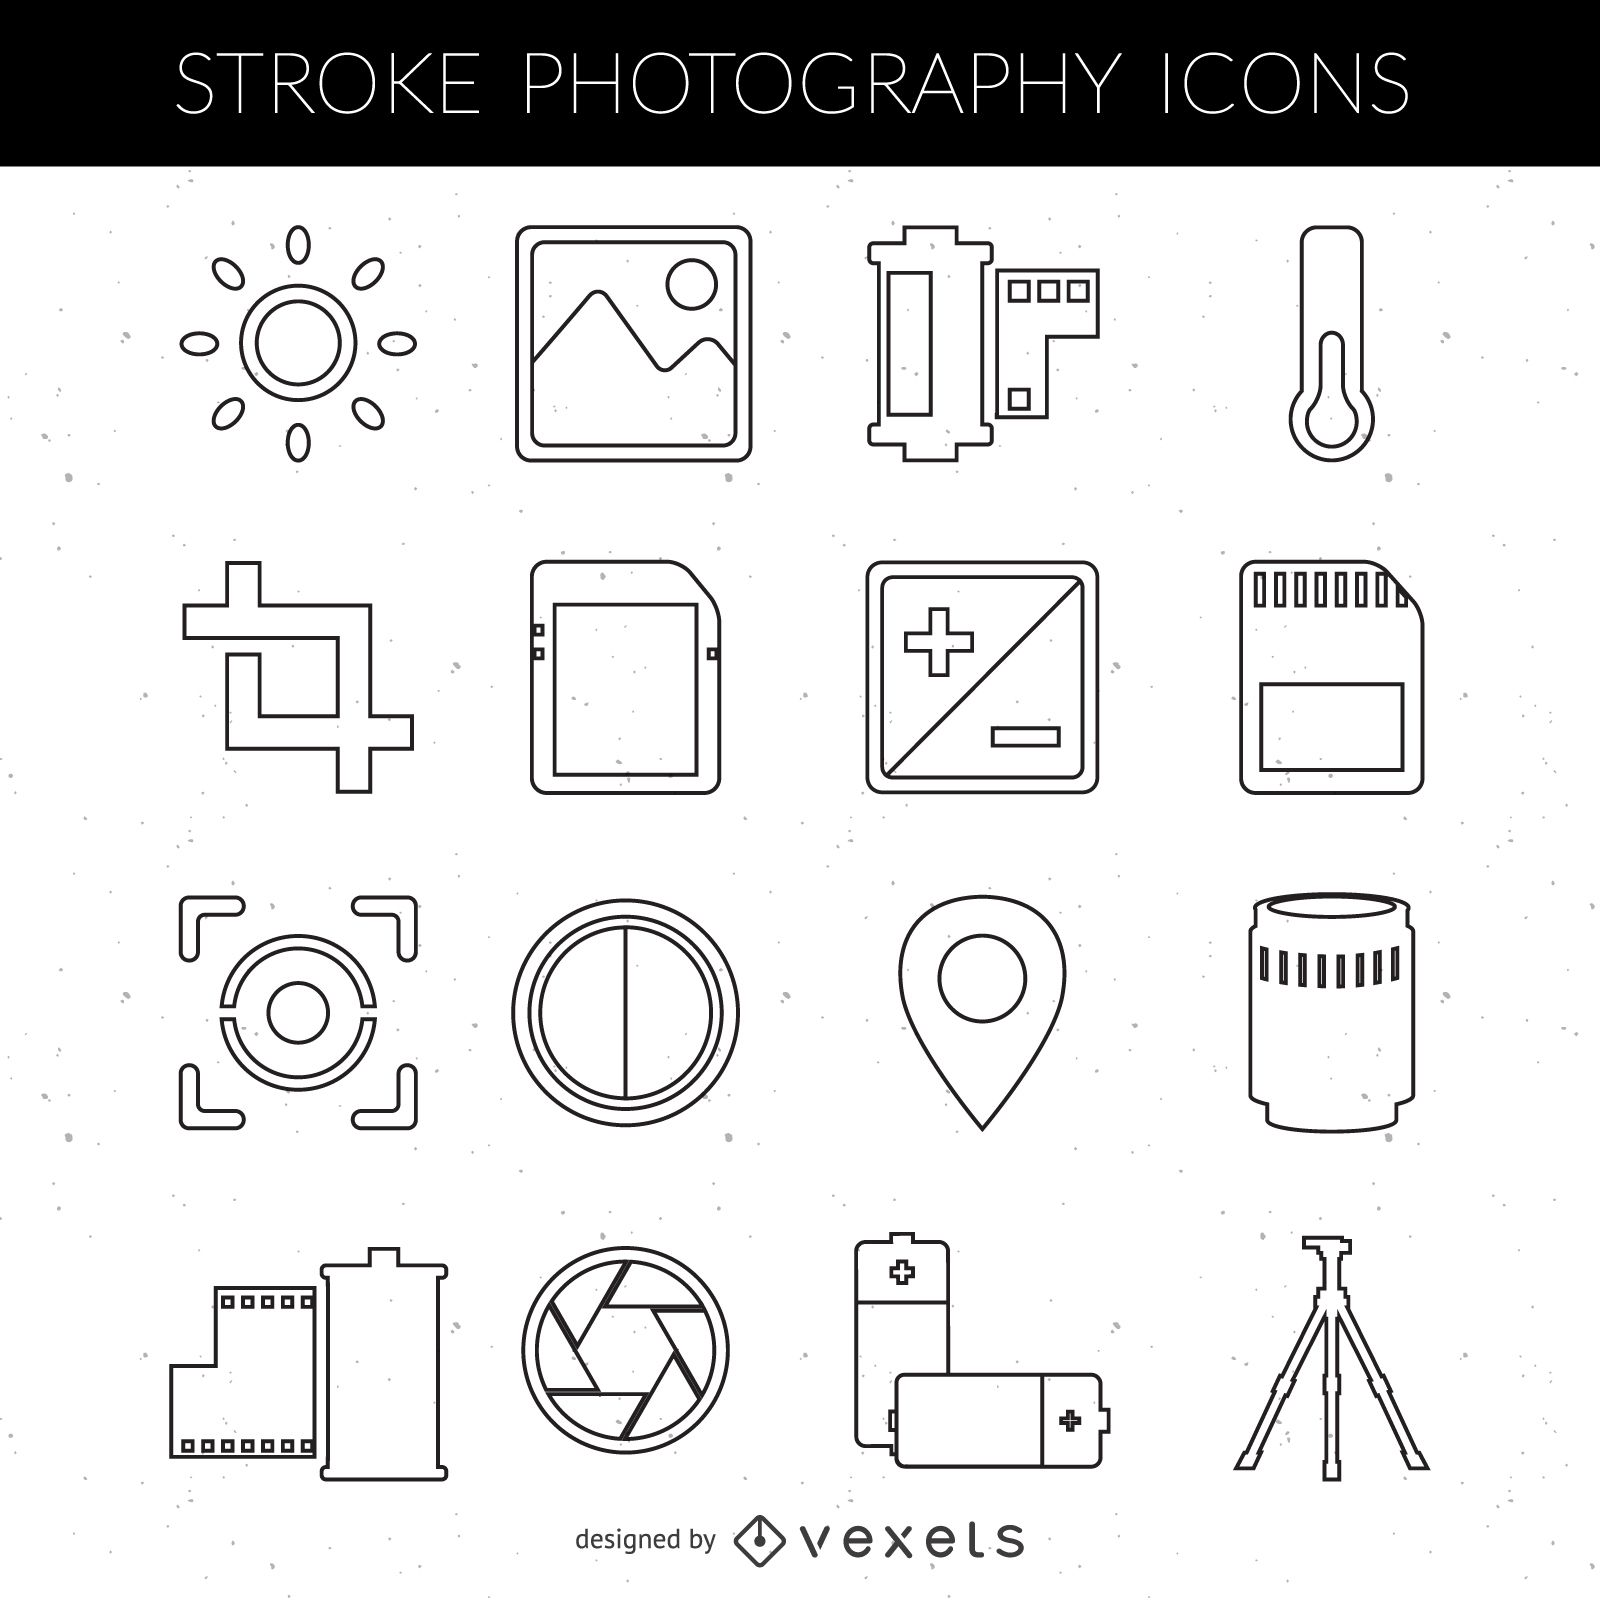 Stroke Photogr Phy Ic Collecti Vect Downlo D